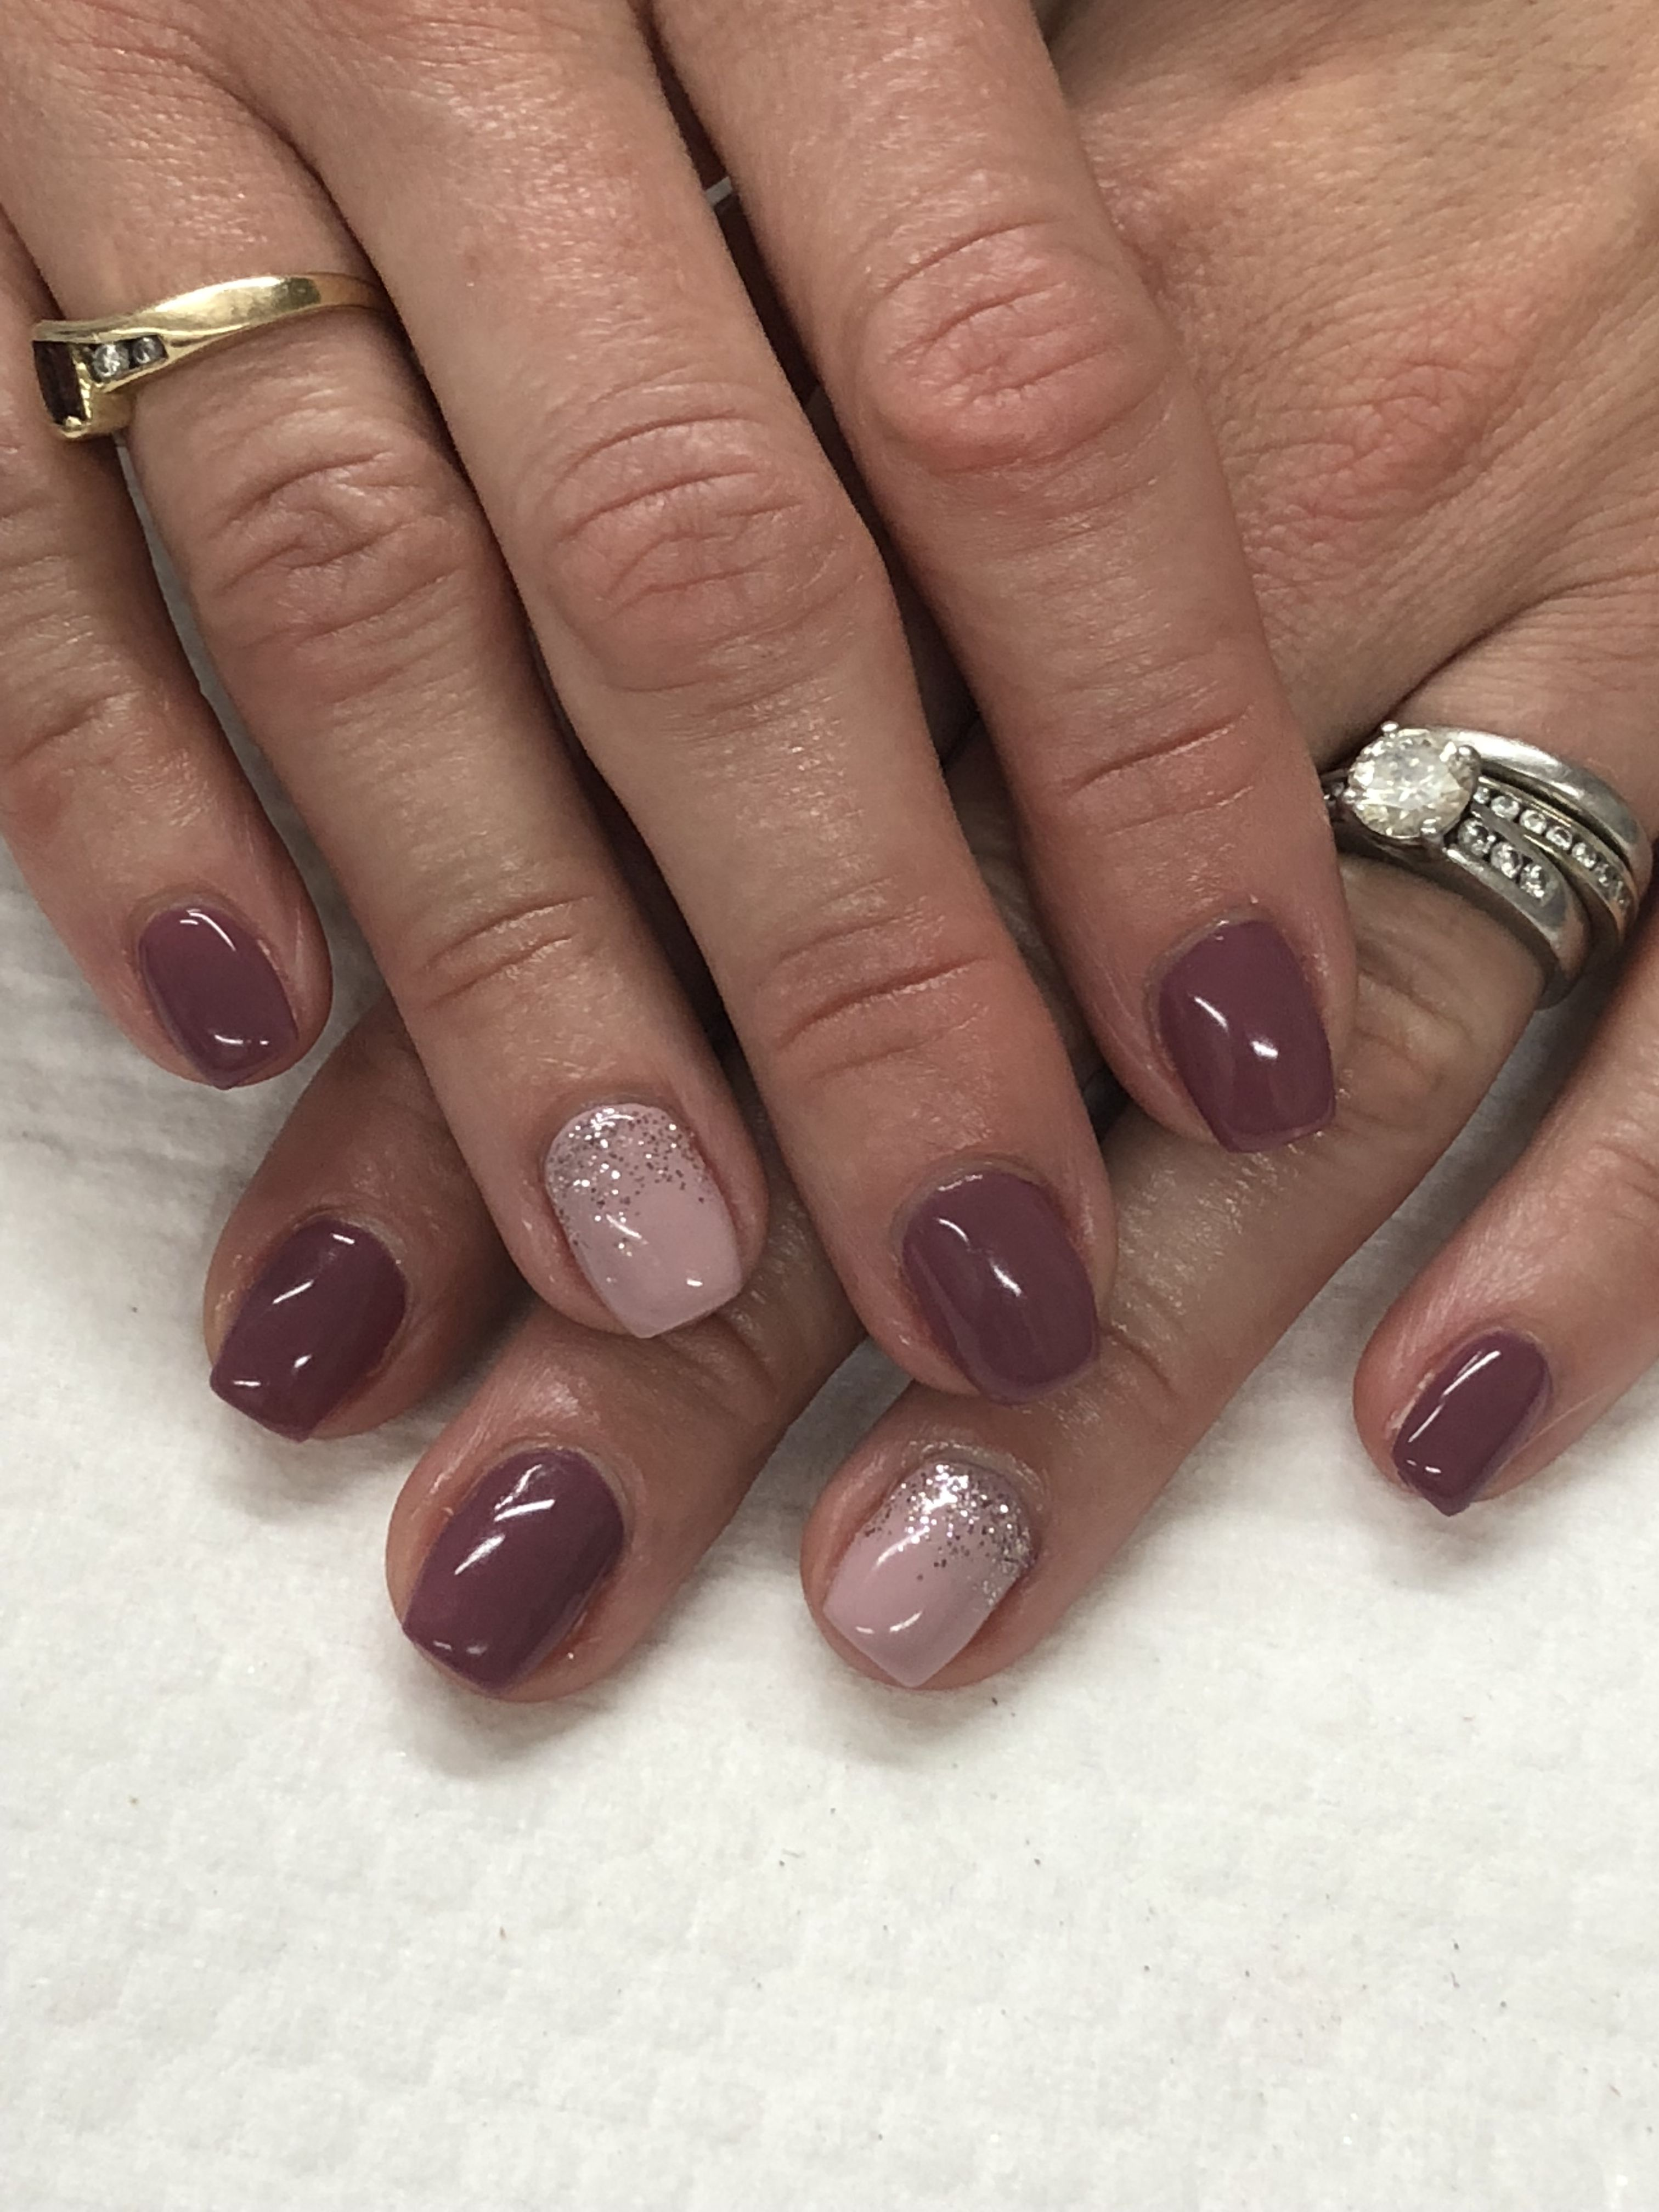 Mauve Summer Fall Gel Nails Light Elegance Rosey Posey Your Churn Pop The Bubbly Fall Gel Nails Mauve Nails Gel Nail Light